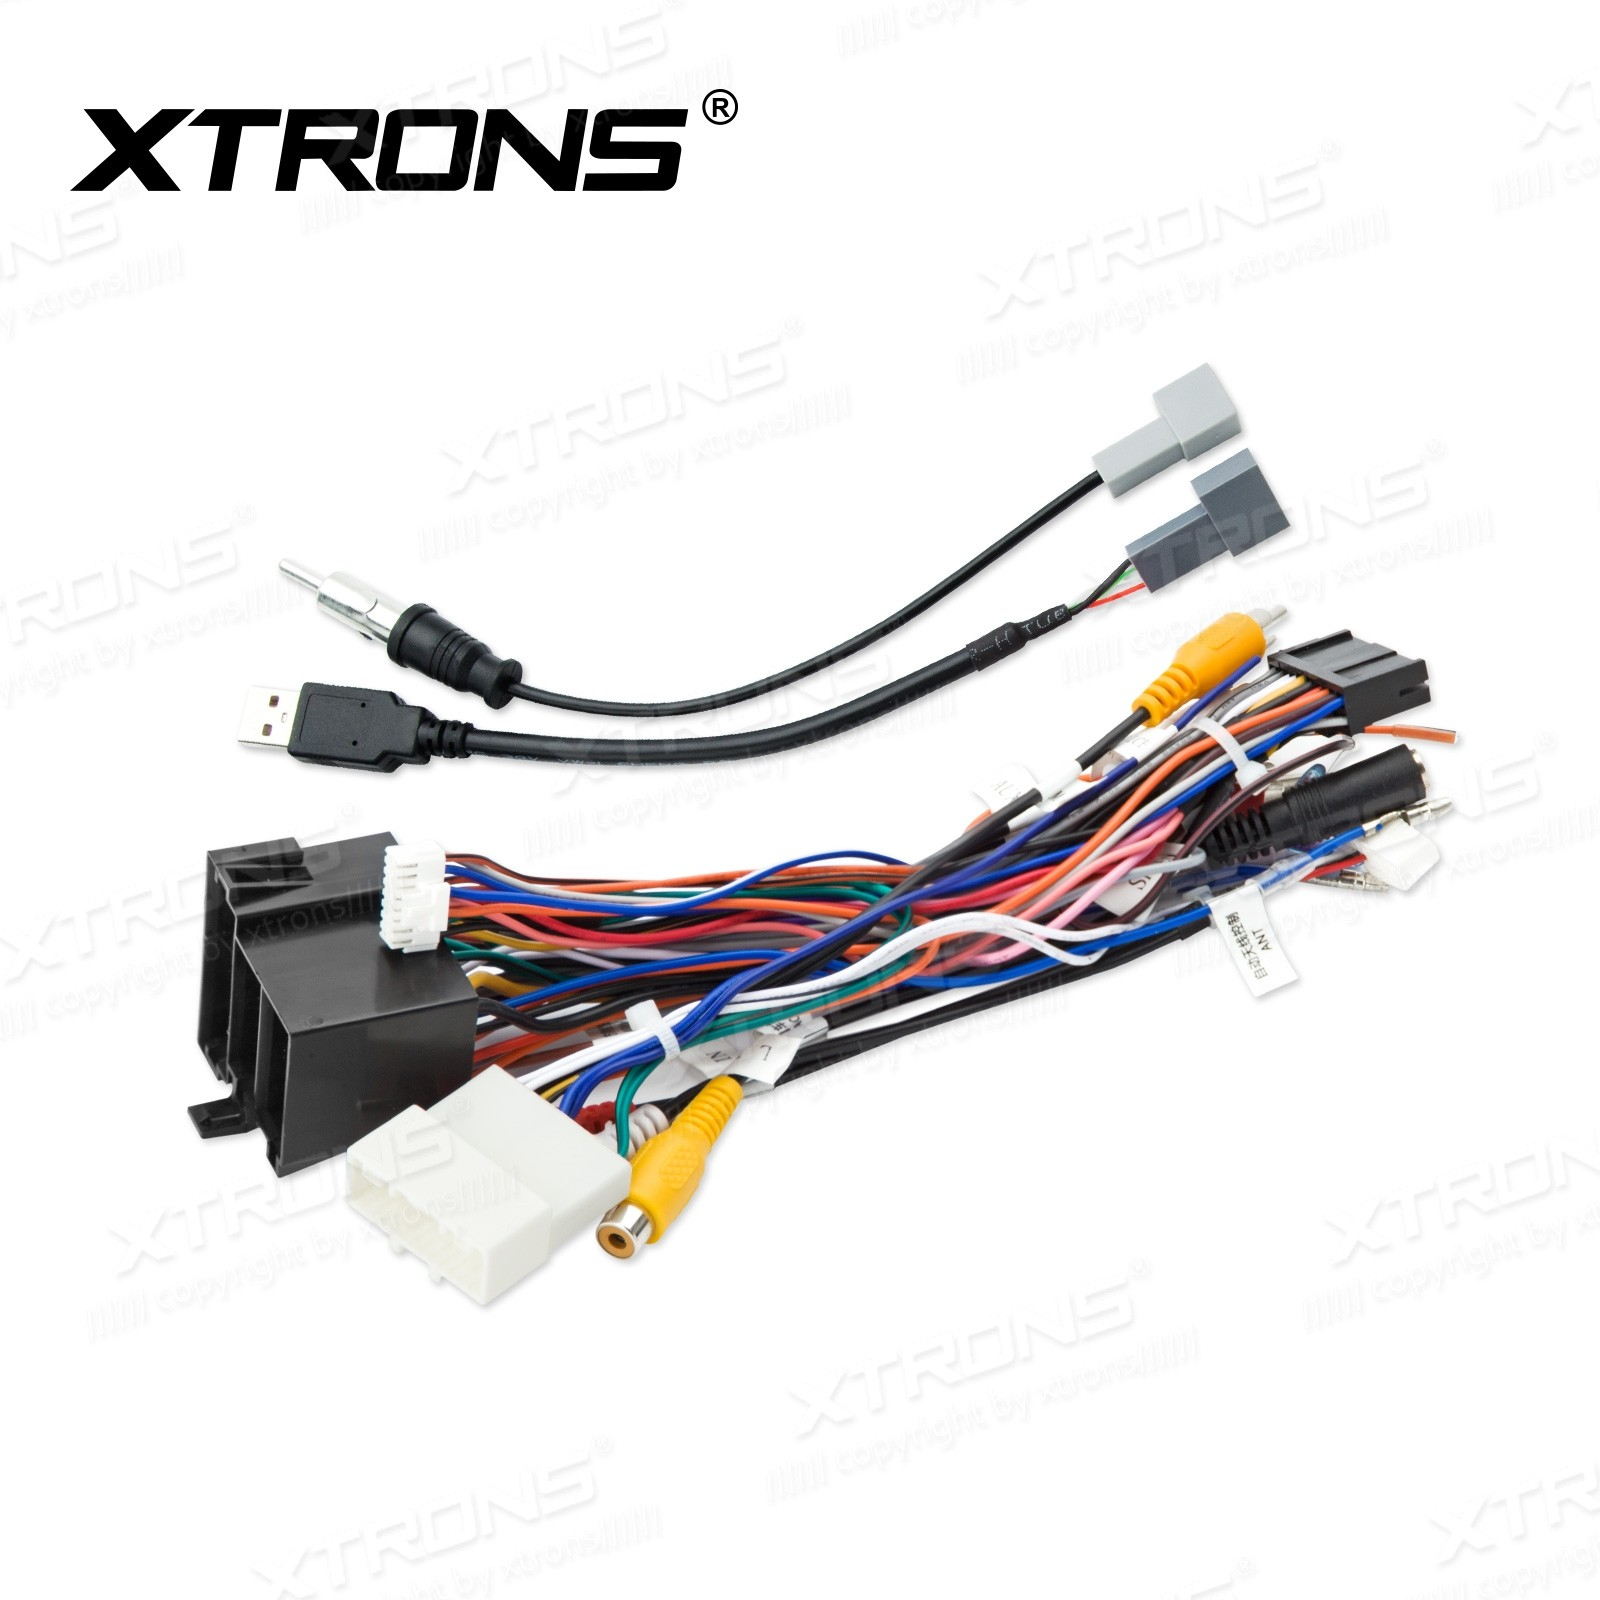 Iso Wiring Harness For Hyundai Ix35 Unit Car Dvd Wholesalers